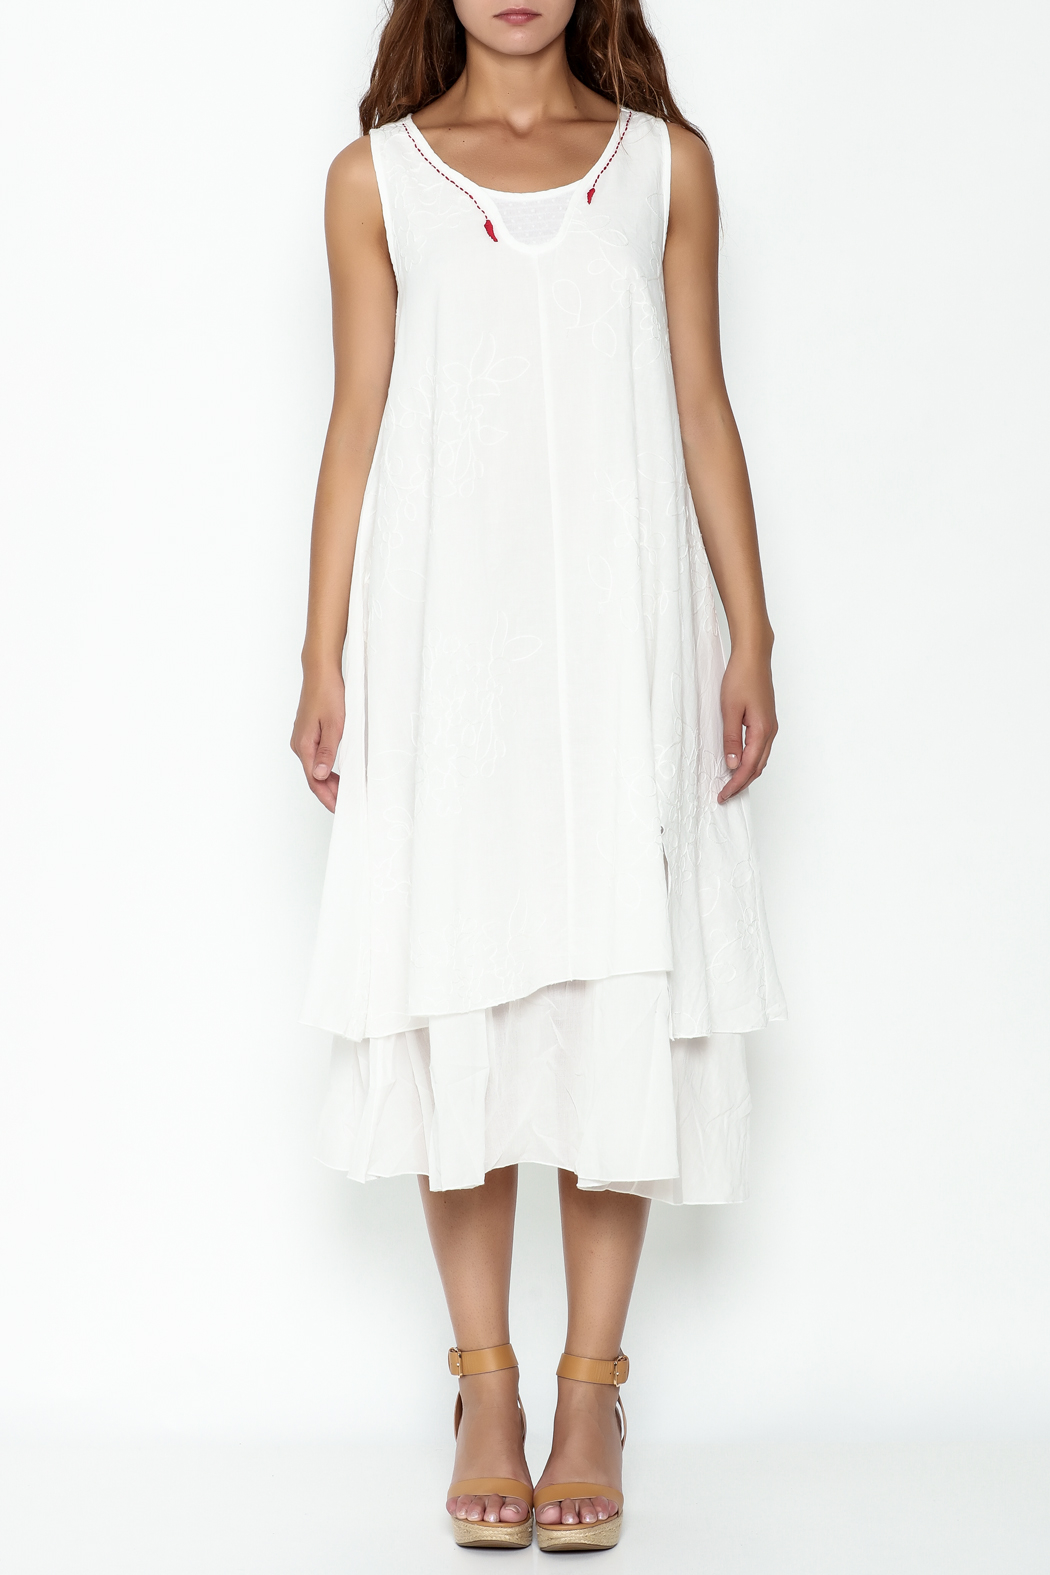 Fashion Pickle Cotton Dress - Front Full Image